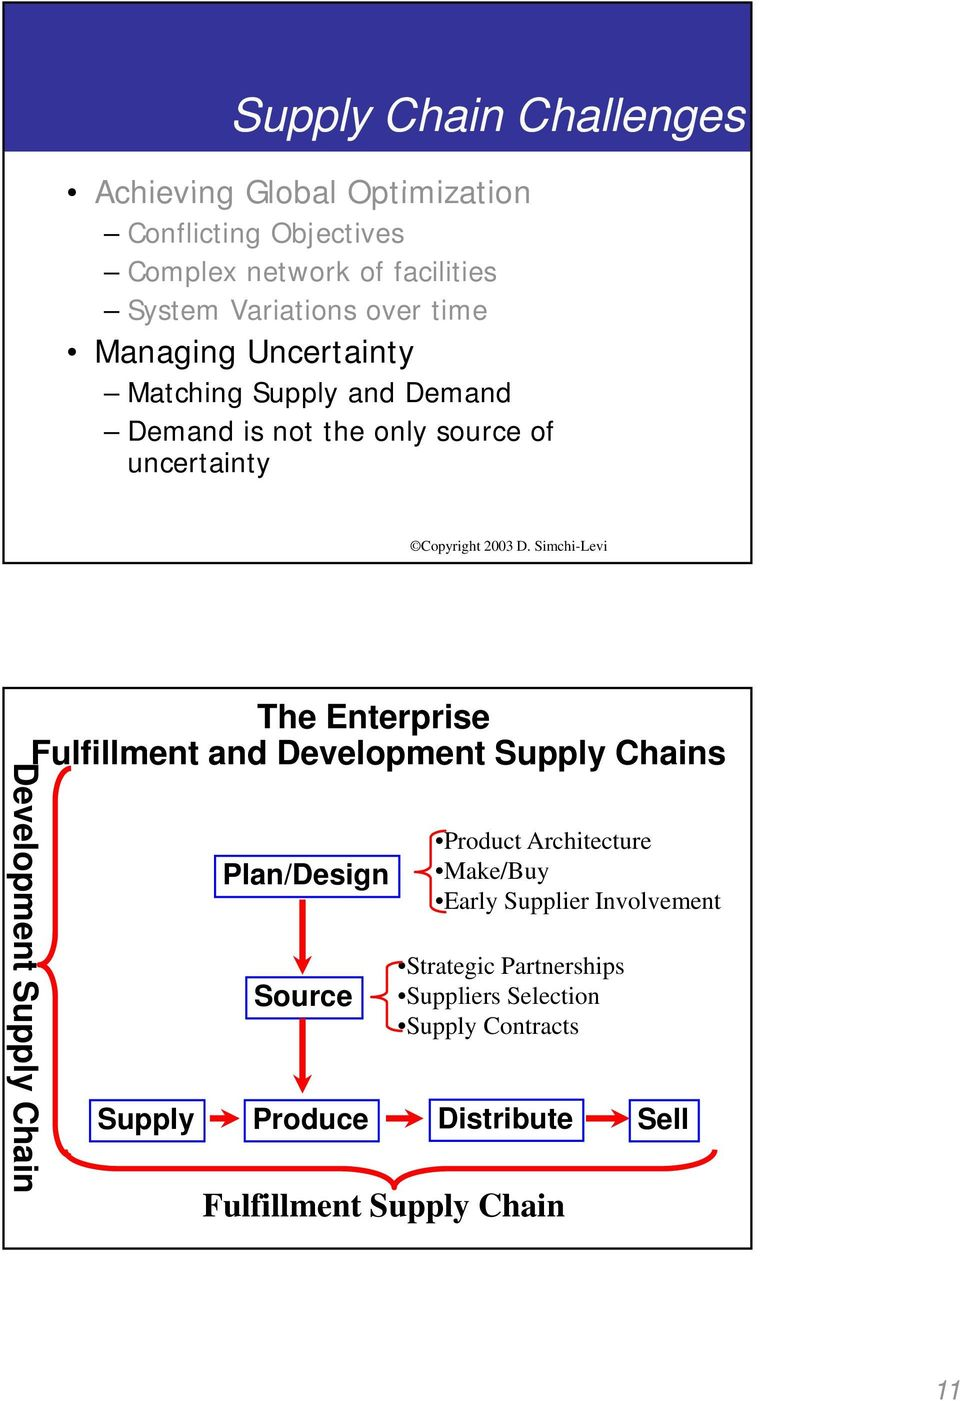 Fulfillment and Development Supply Chains Develop pment Supply Chain Plan/Design Source Product Architecture Make/Buy Early